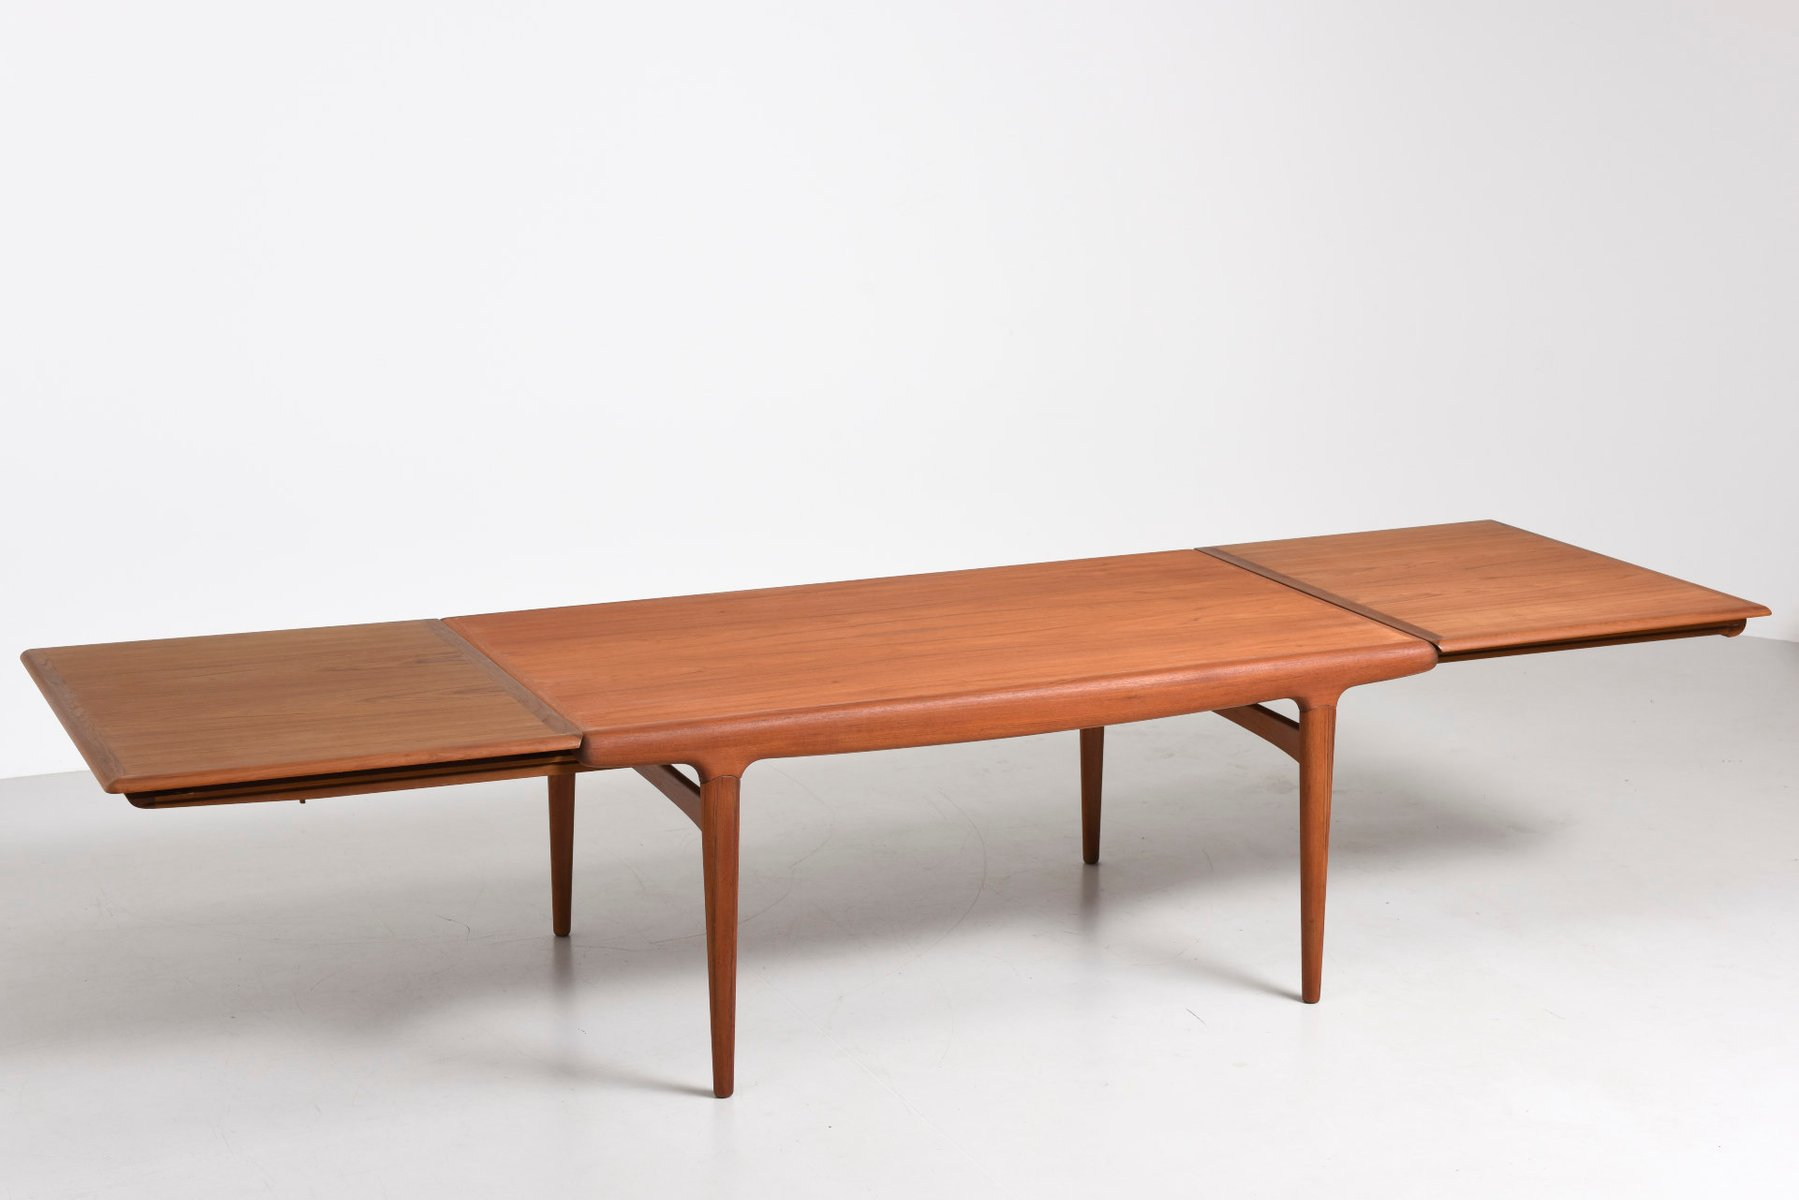 Extra large vintage dining table by johannes andersen for for Extra small dining table